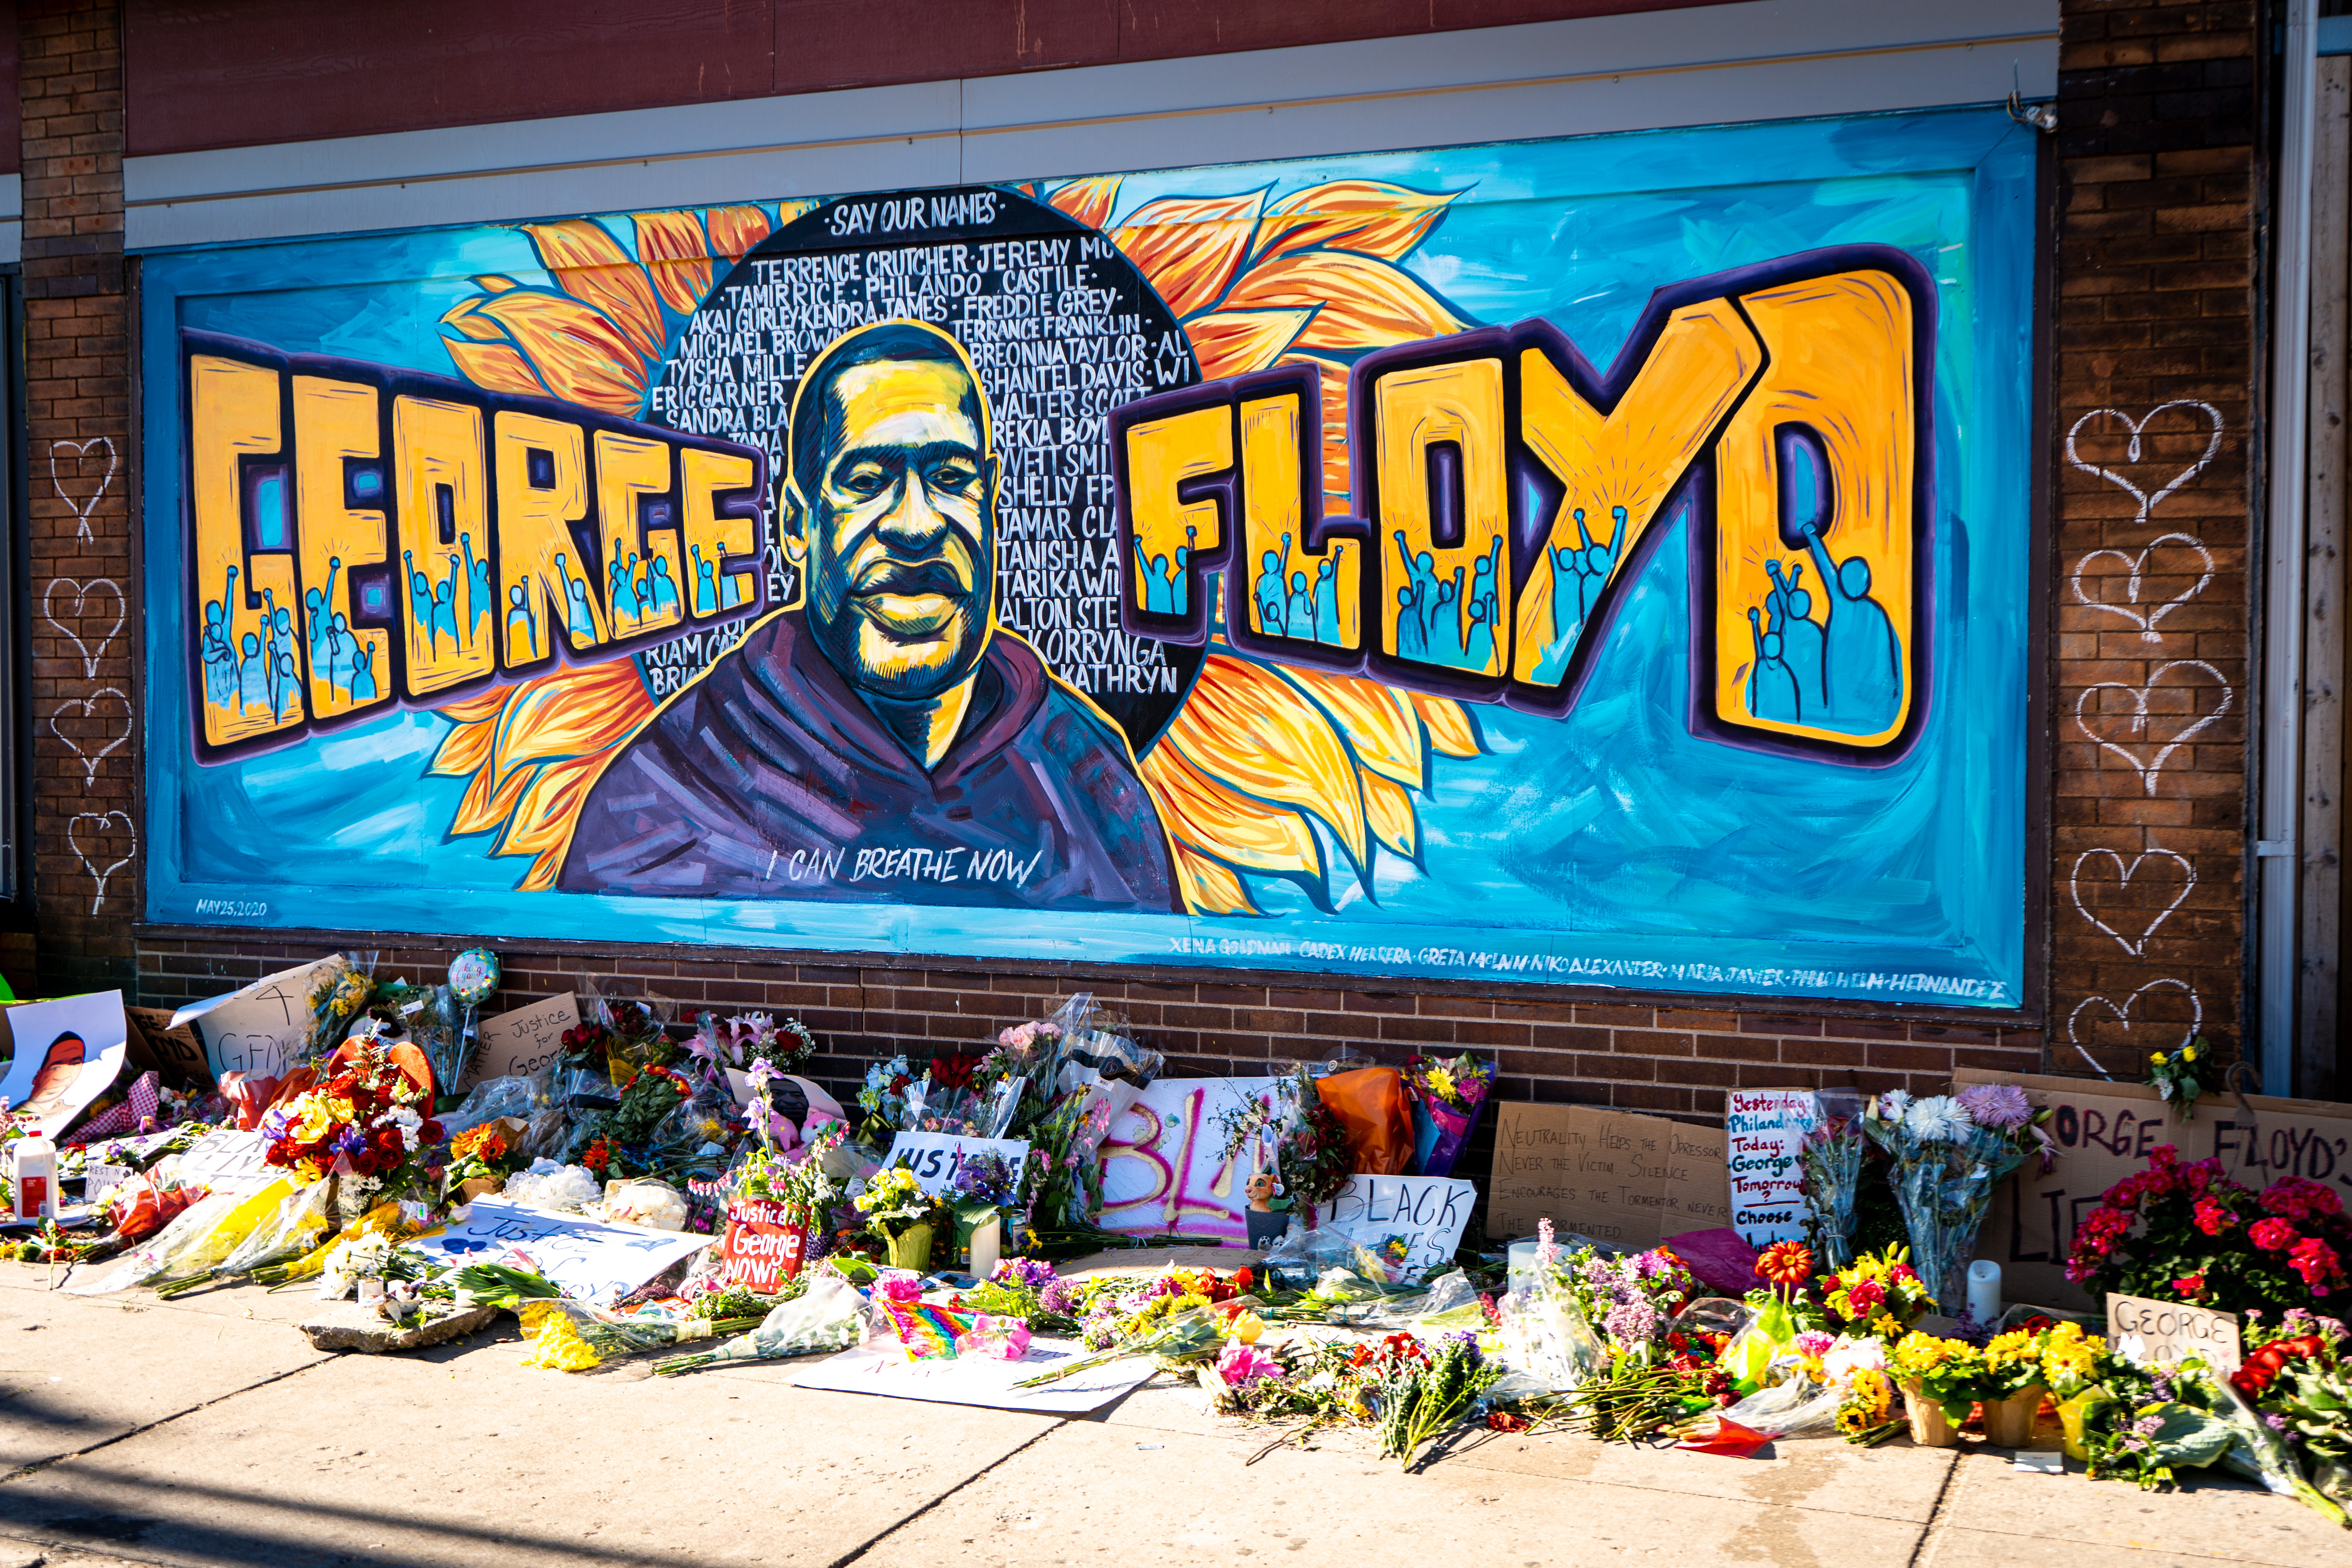 beautiful graffiti mural honoring george floyd from black lives matter protest . . . for more editorial photos: http://www.shutterstock.com/g/MUNSHOTS?rid=267047586